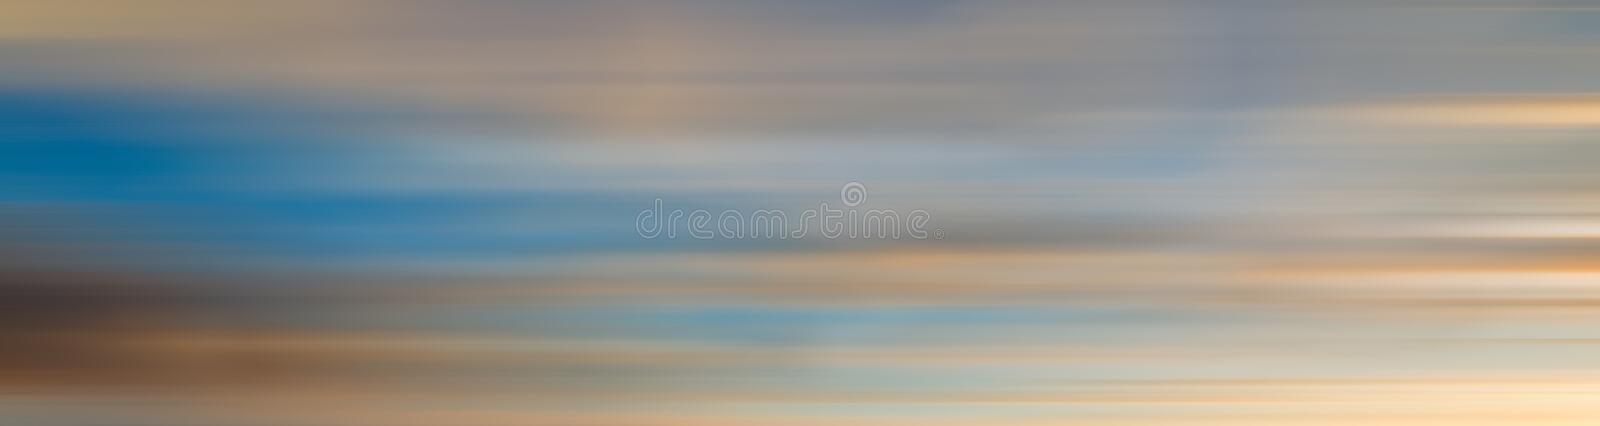 Linear motion blur effect of colorful sunset stock image